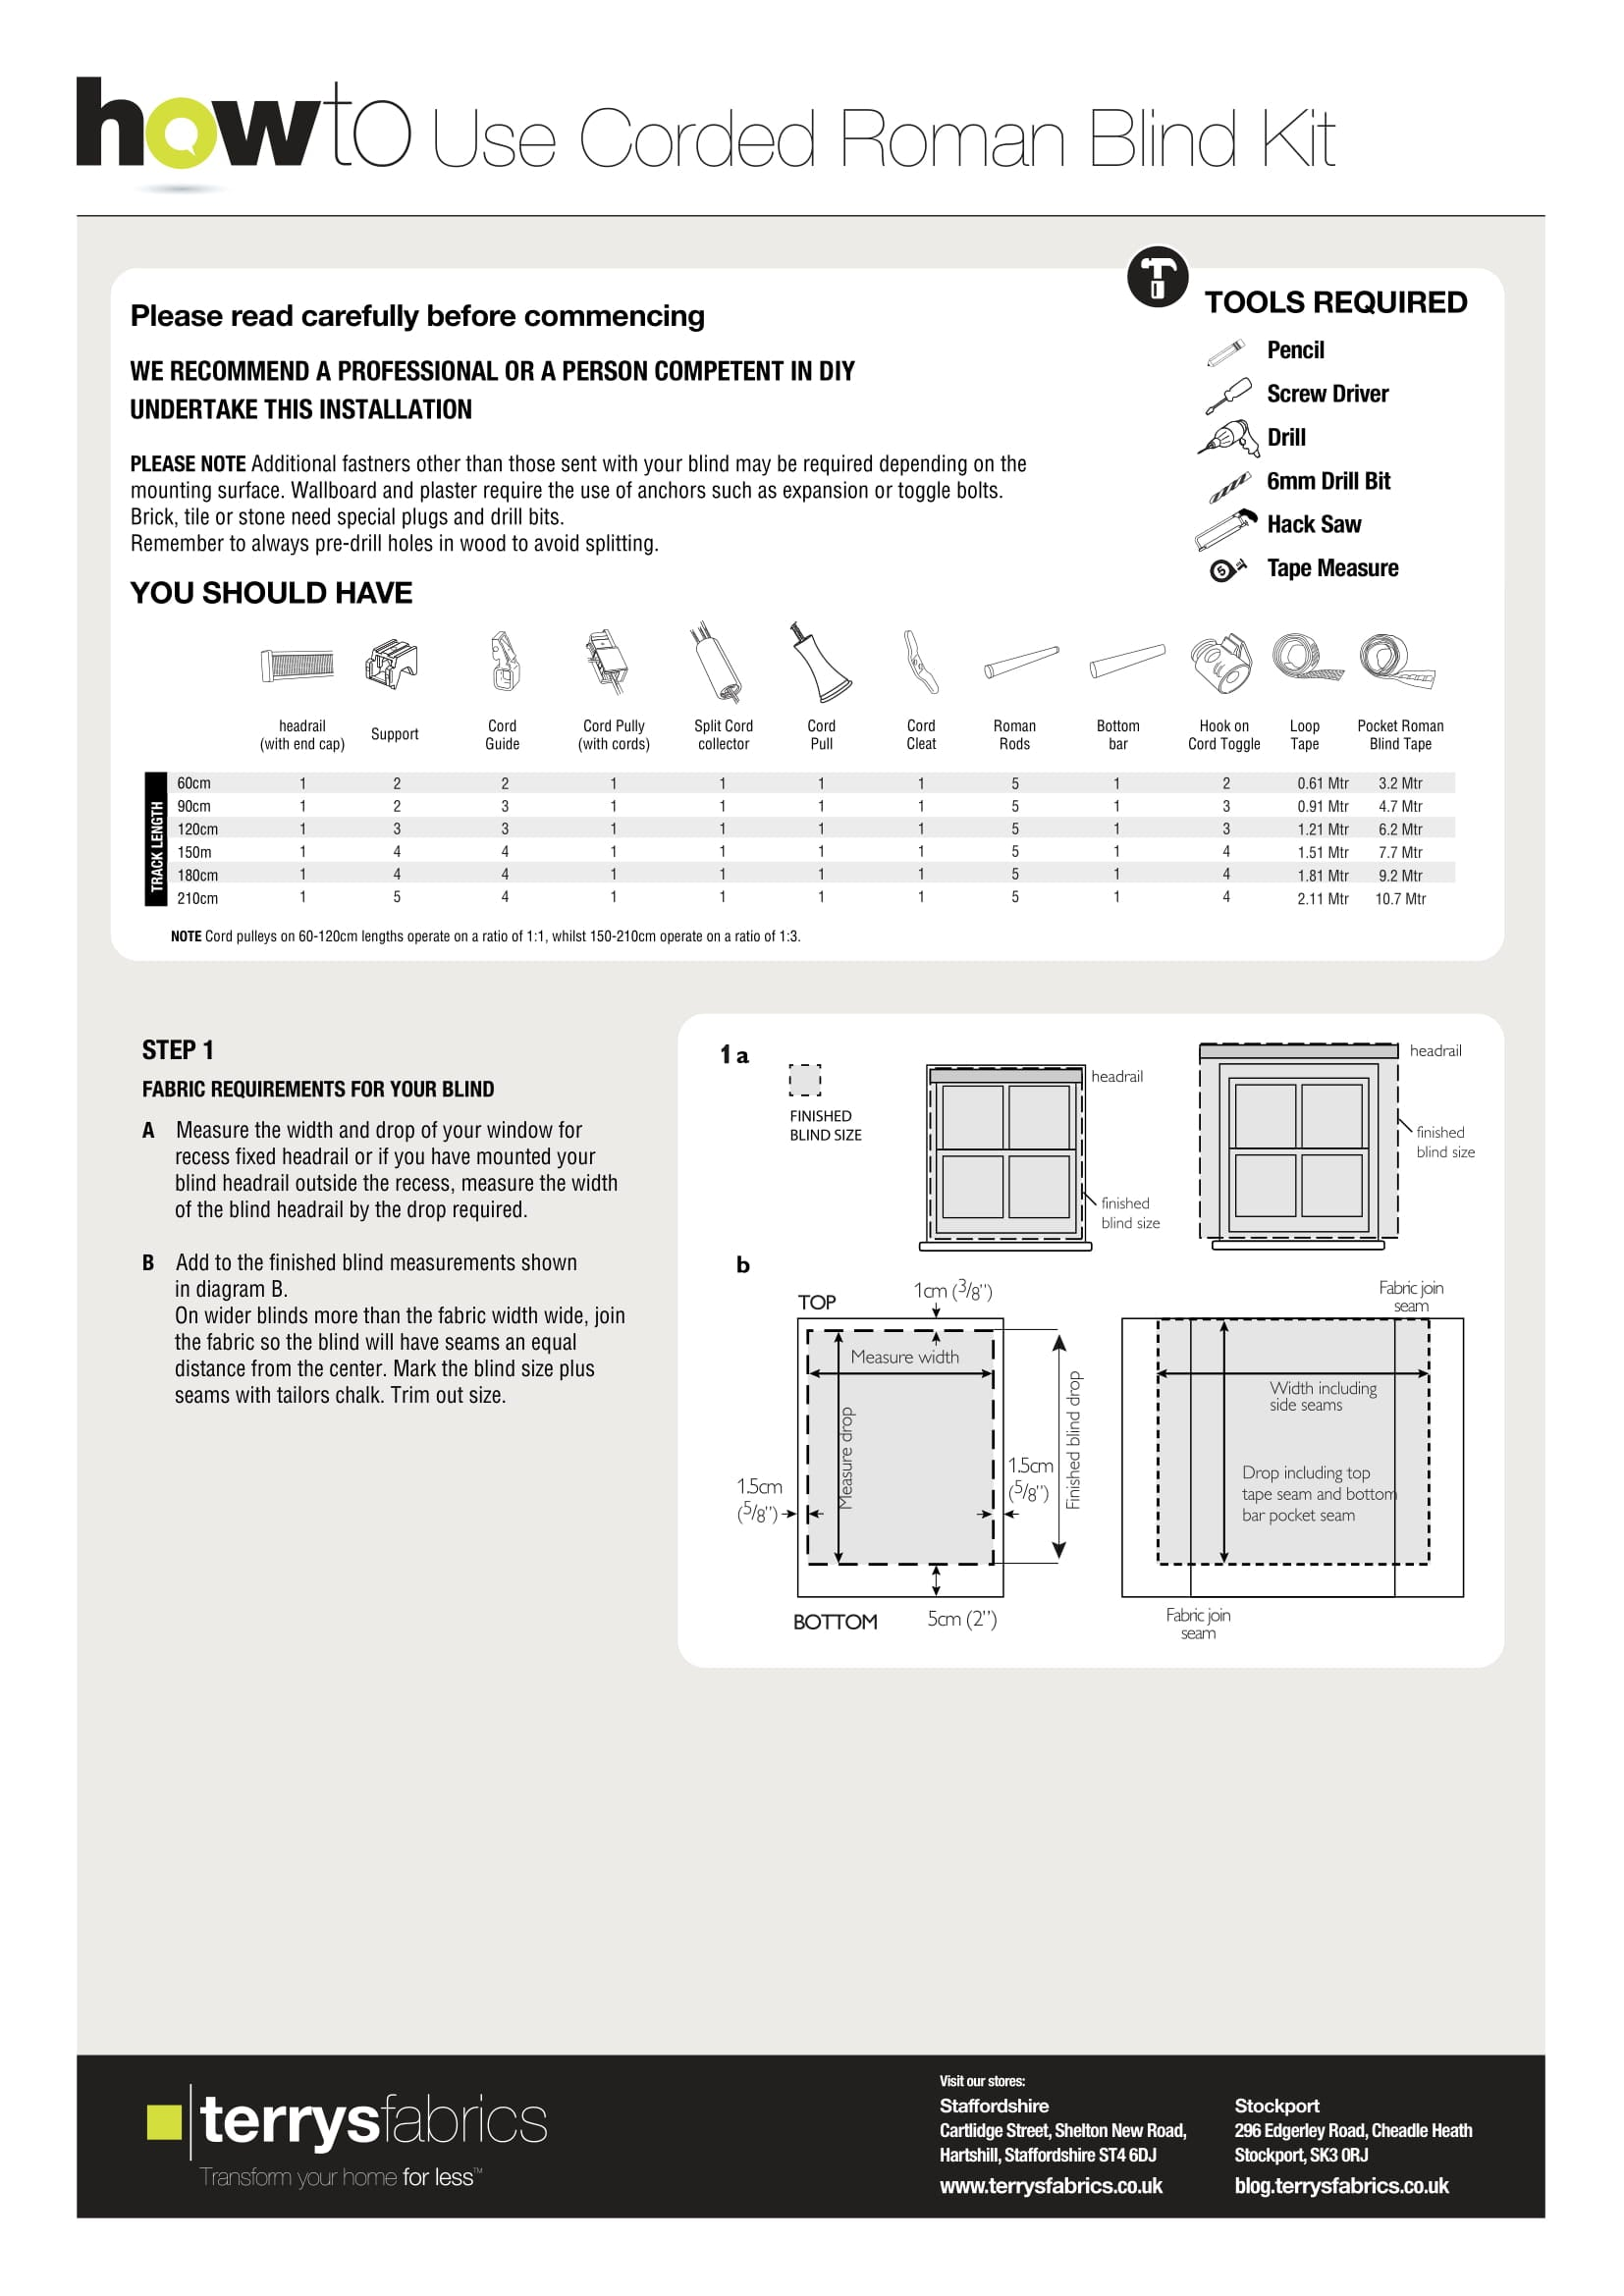 Corded Roman Blind Kit Fitting Instructions One